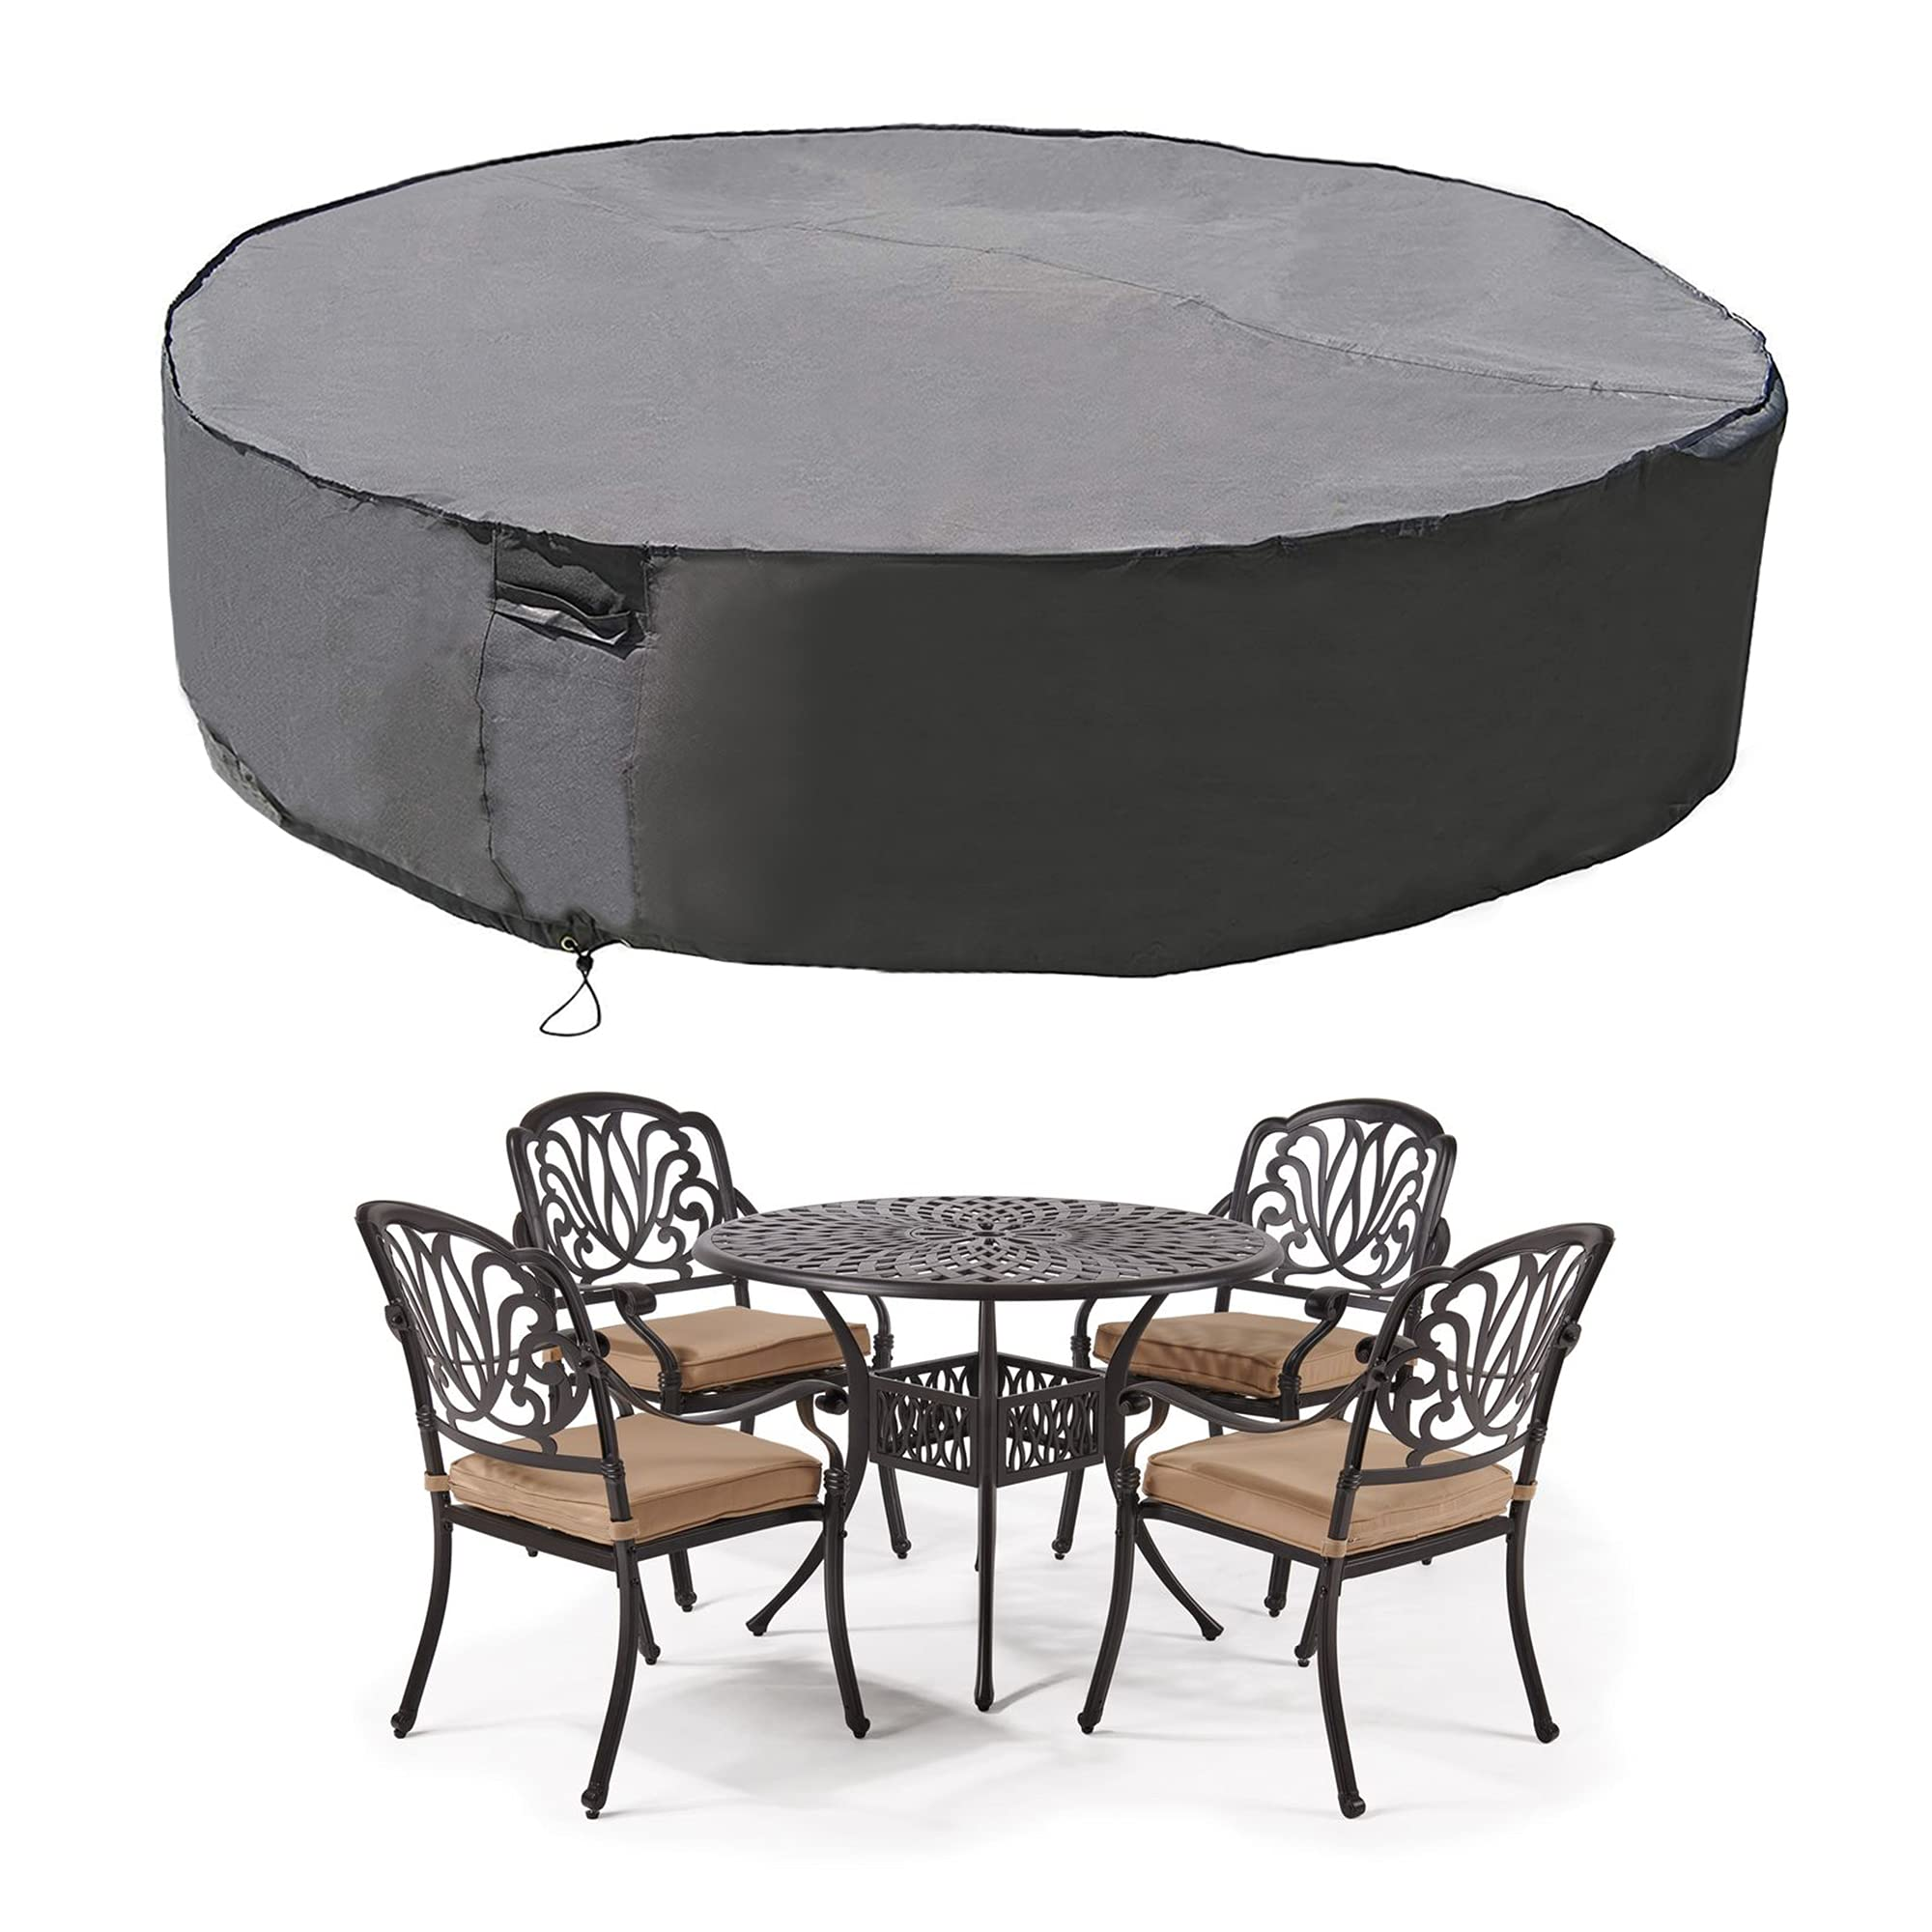 MH M&H Patio Furniture Covers, Outdoor Furniture Covers Waterproof with Handles and Durable Hem Cord, Fit Large Round Table and Chairs, 600D UV Resistant Fabric,108''D x 23''H, Taupe